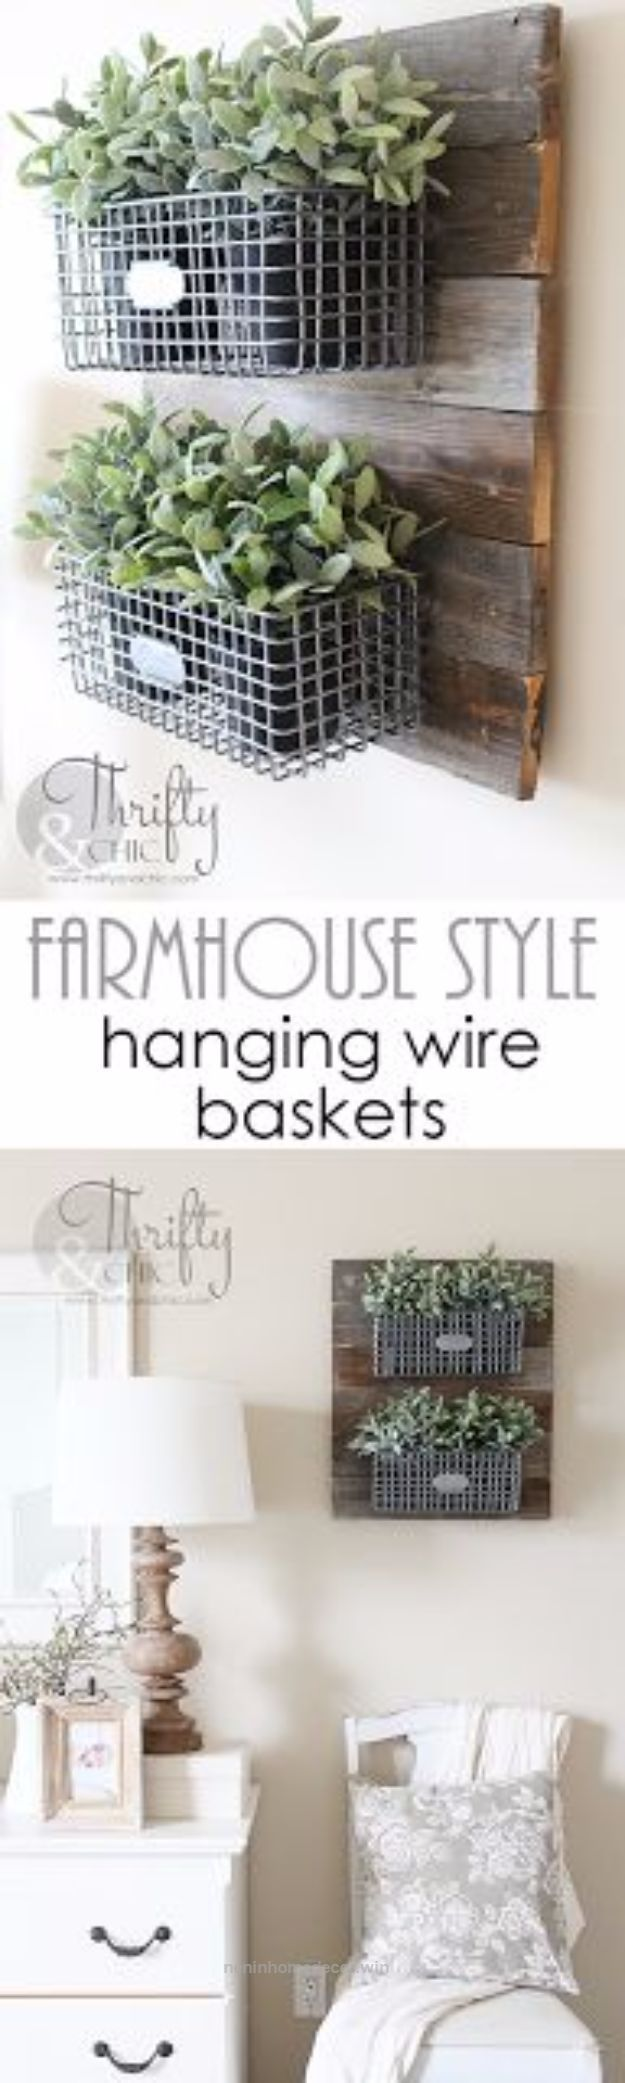 Superb Best Country Decor Ideas – Farmhouse Style Hanging Wire Baskets – Rustic Farmhouse Decor Tutorials and Easy Vintage Shabby Chic Home Decor for Kitchen, Living Room and Bathroom – Creativ ..